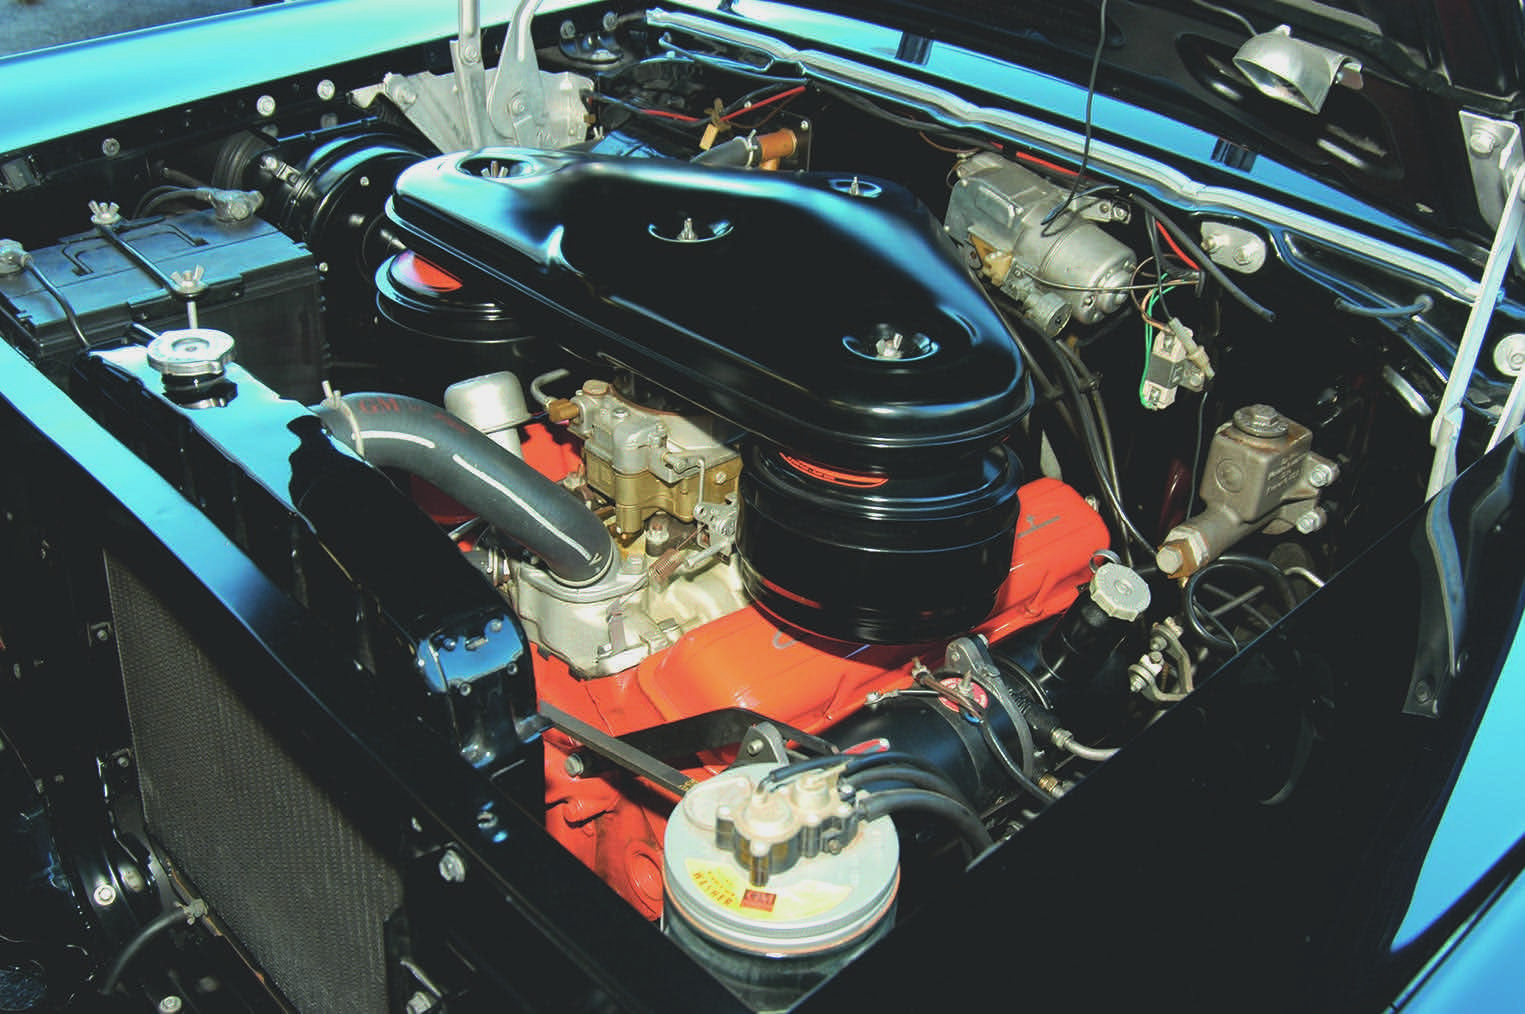 1957 Chevy engine